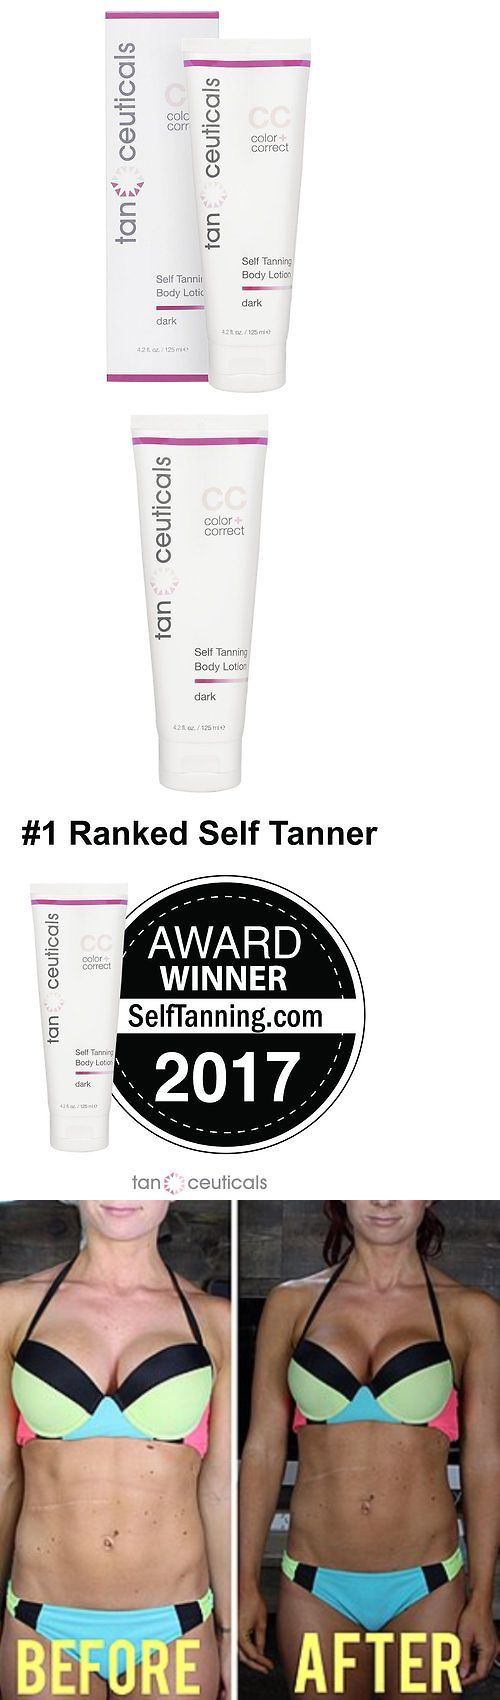 Sunless Tanning Products: Tanceuticals #1 Rated Self Tanner - Cc Self Tanning Lotion For Body Gives -> BUY IT NOW ONLY: $33.28 on eBay!